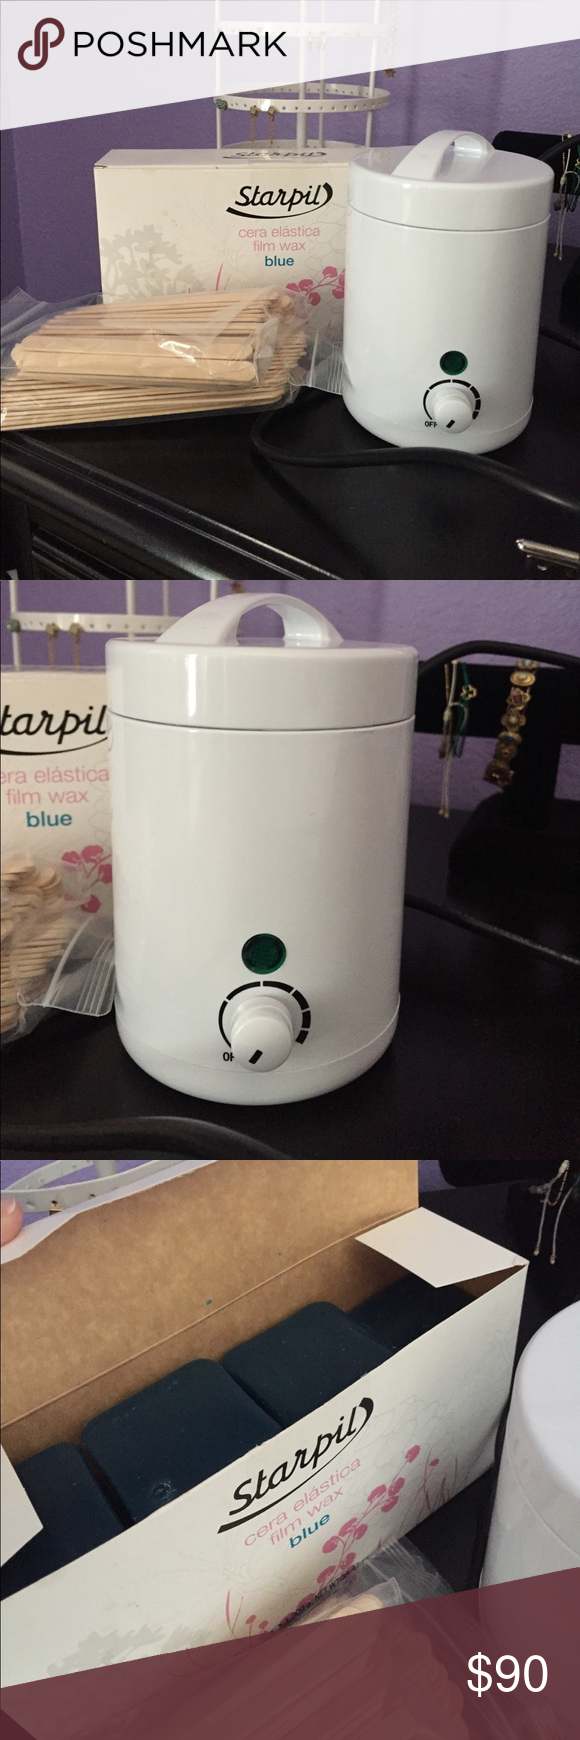 Starpil Wax Kit Offers Open Trying To Get Rid Of If Purchased Everything Shown Above Will Come W It 2 Packets Waxing Kit Wax Tablet Makeup Tools Brushes